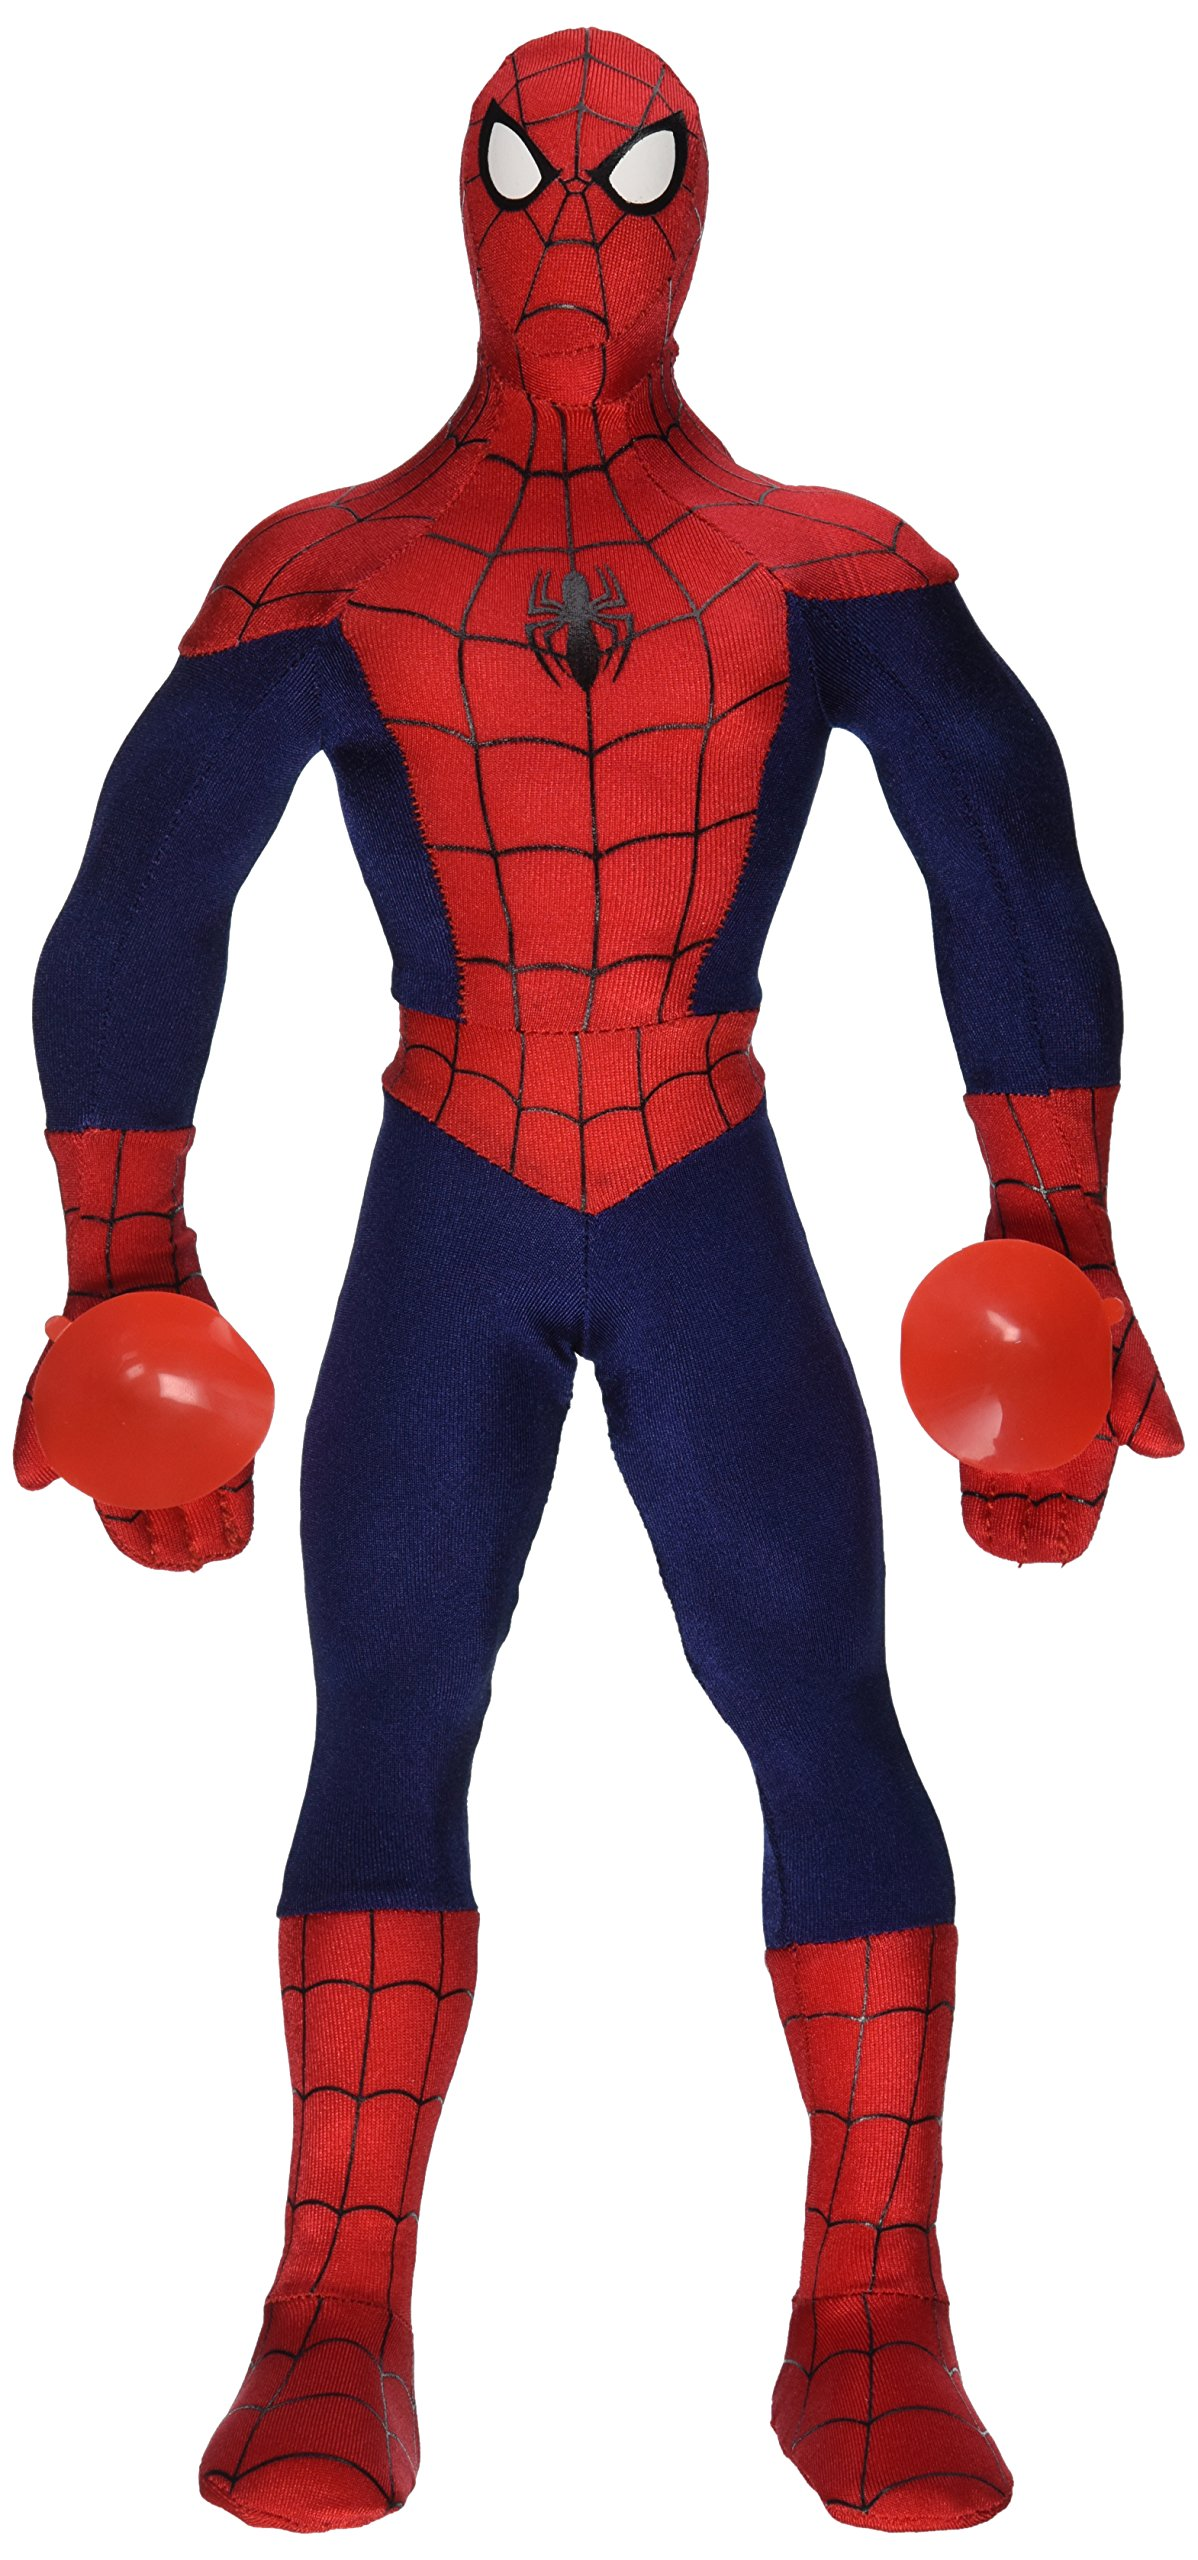 Marvel Spiderman Poseable Action Figure Plush Toy by Just Play